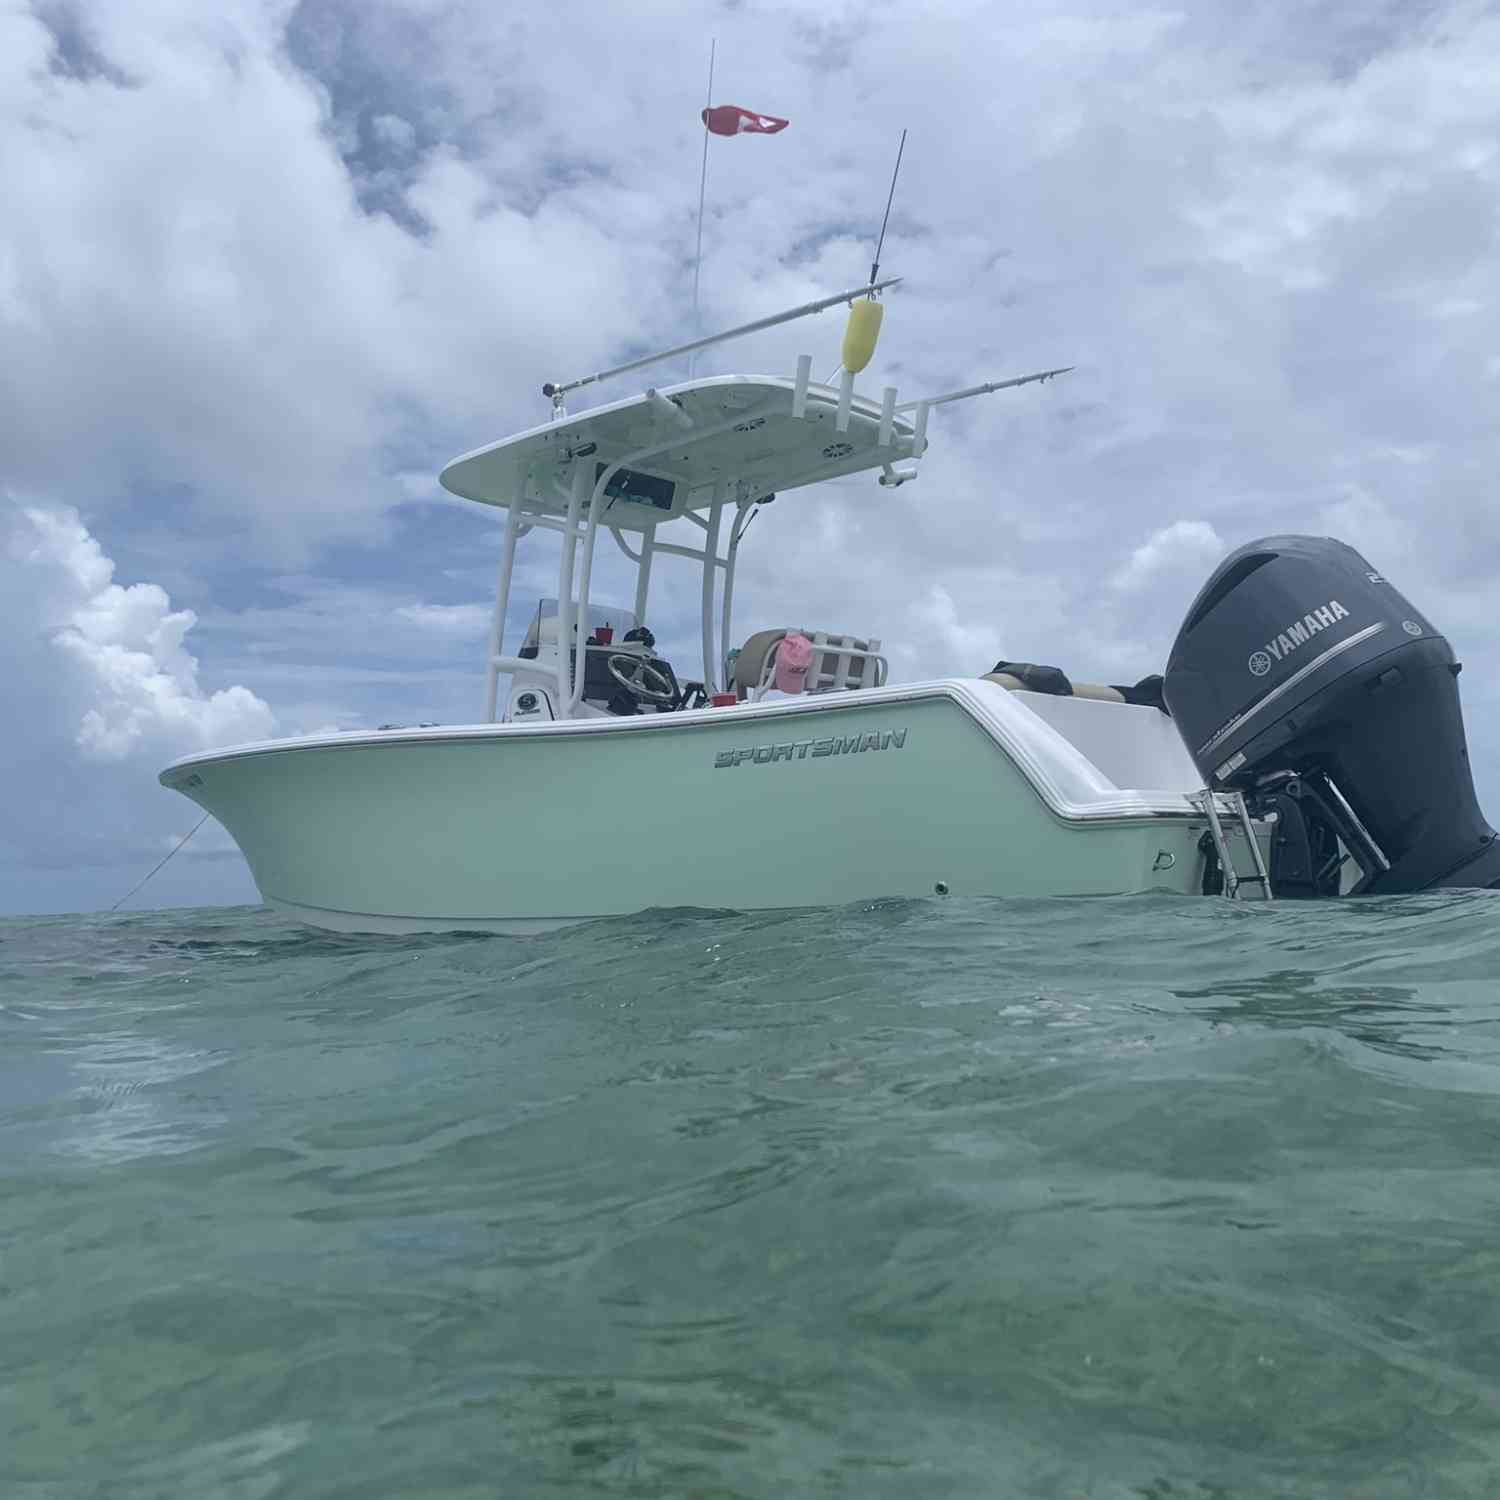 Title: Sportsman 232 sitting  pretty - On board their Sportsman Open 232 Center Console - Location: Key largo. Participating in the Photo Contest #SportsmanDecember2020